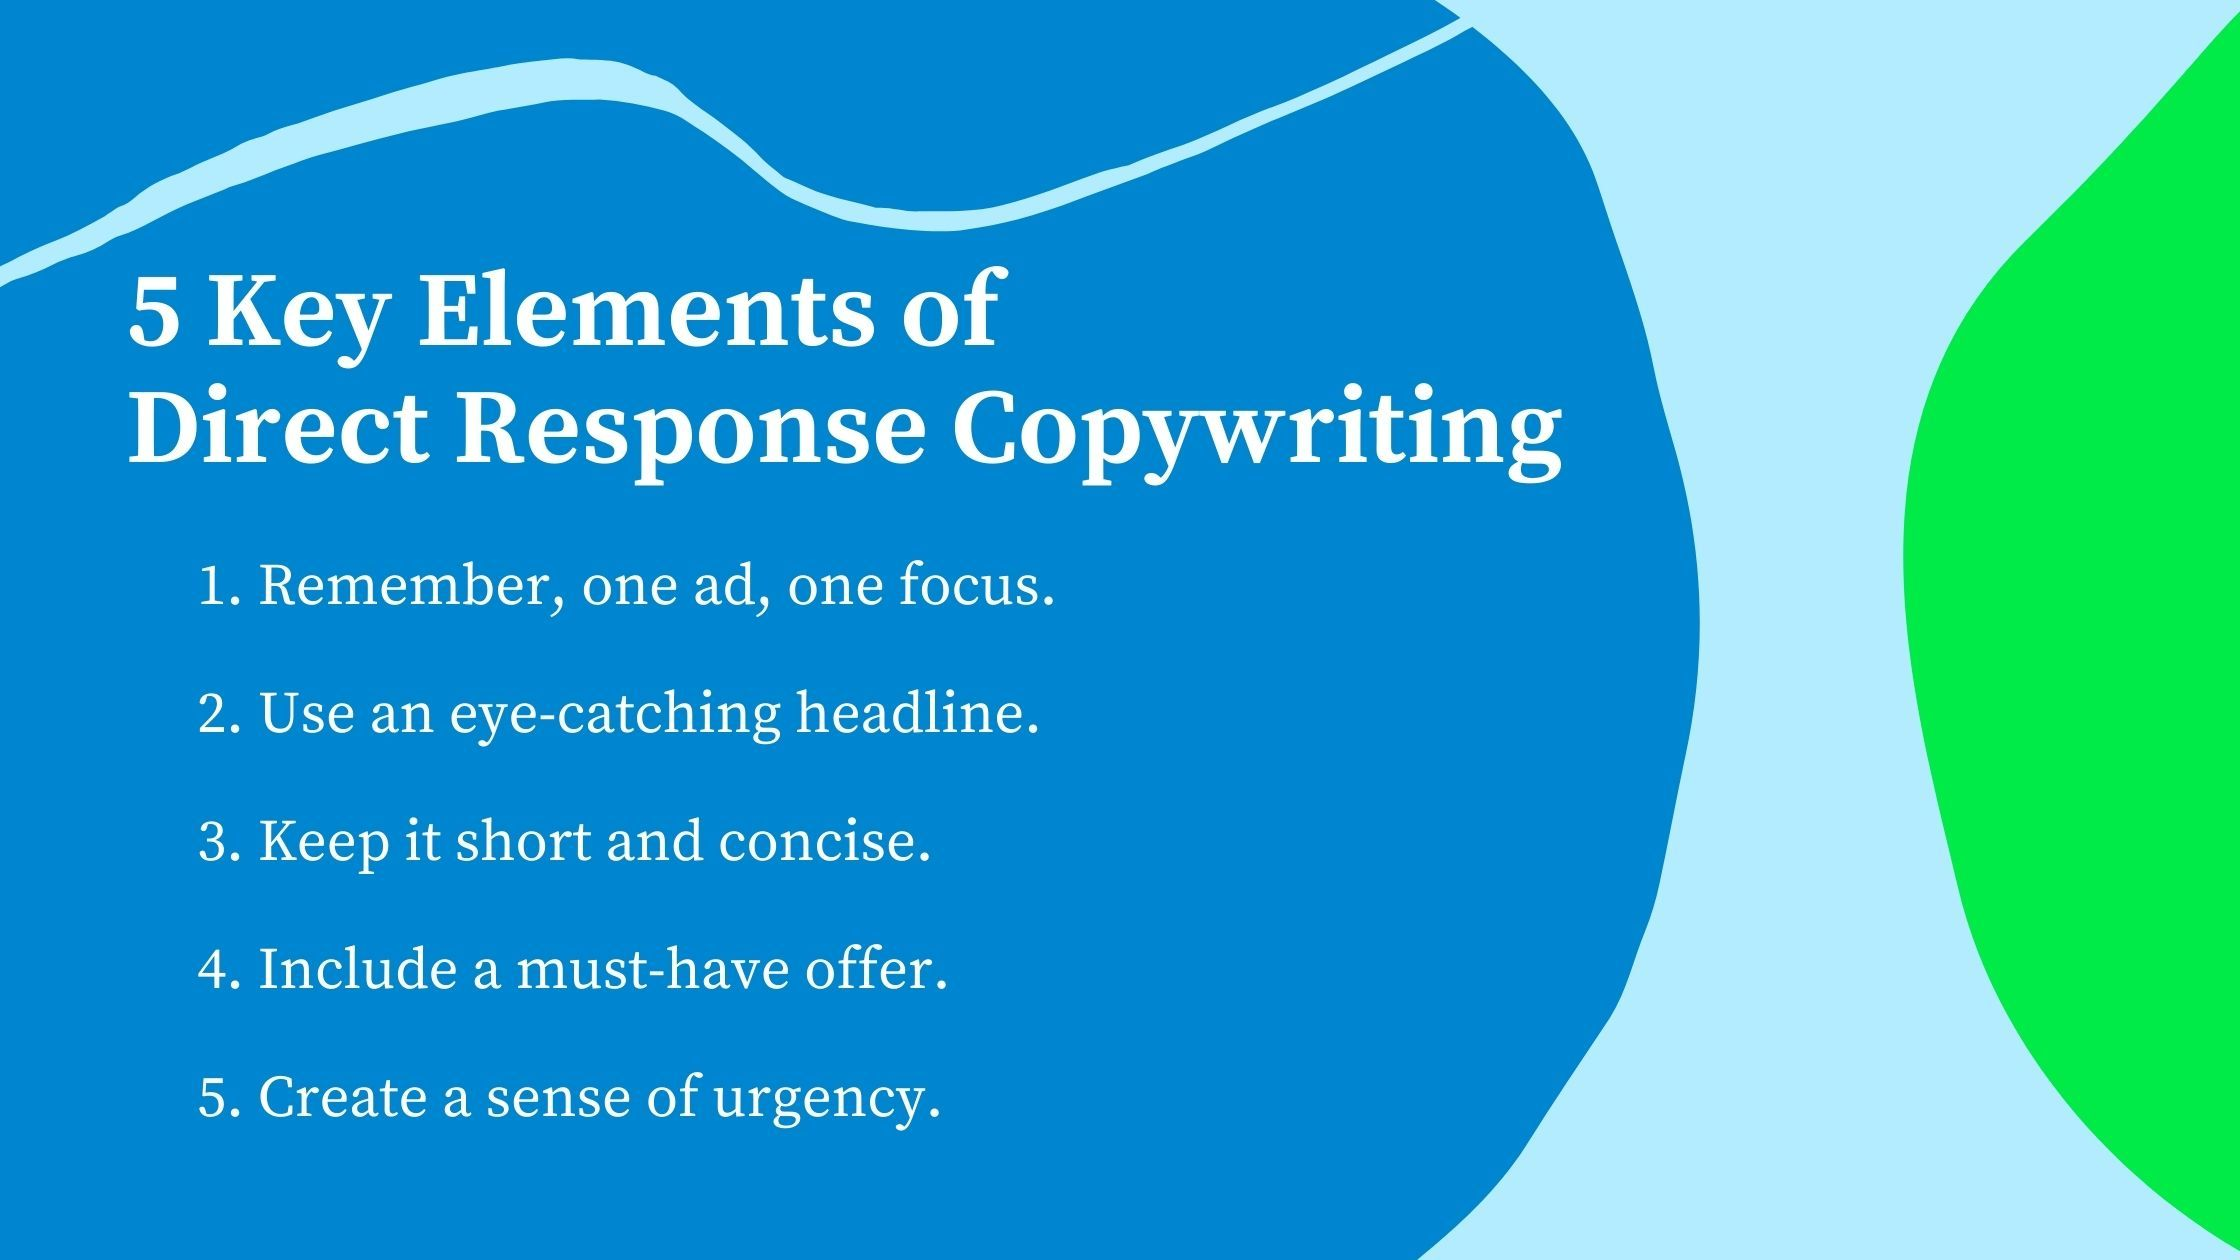 How To Write A Direct Response Marketing Campaign